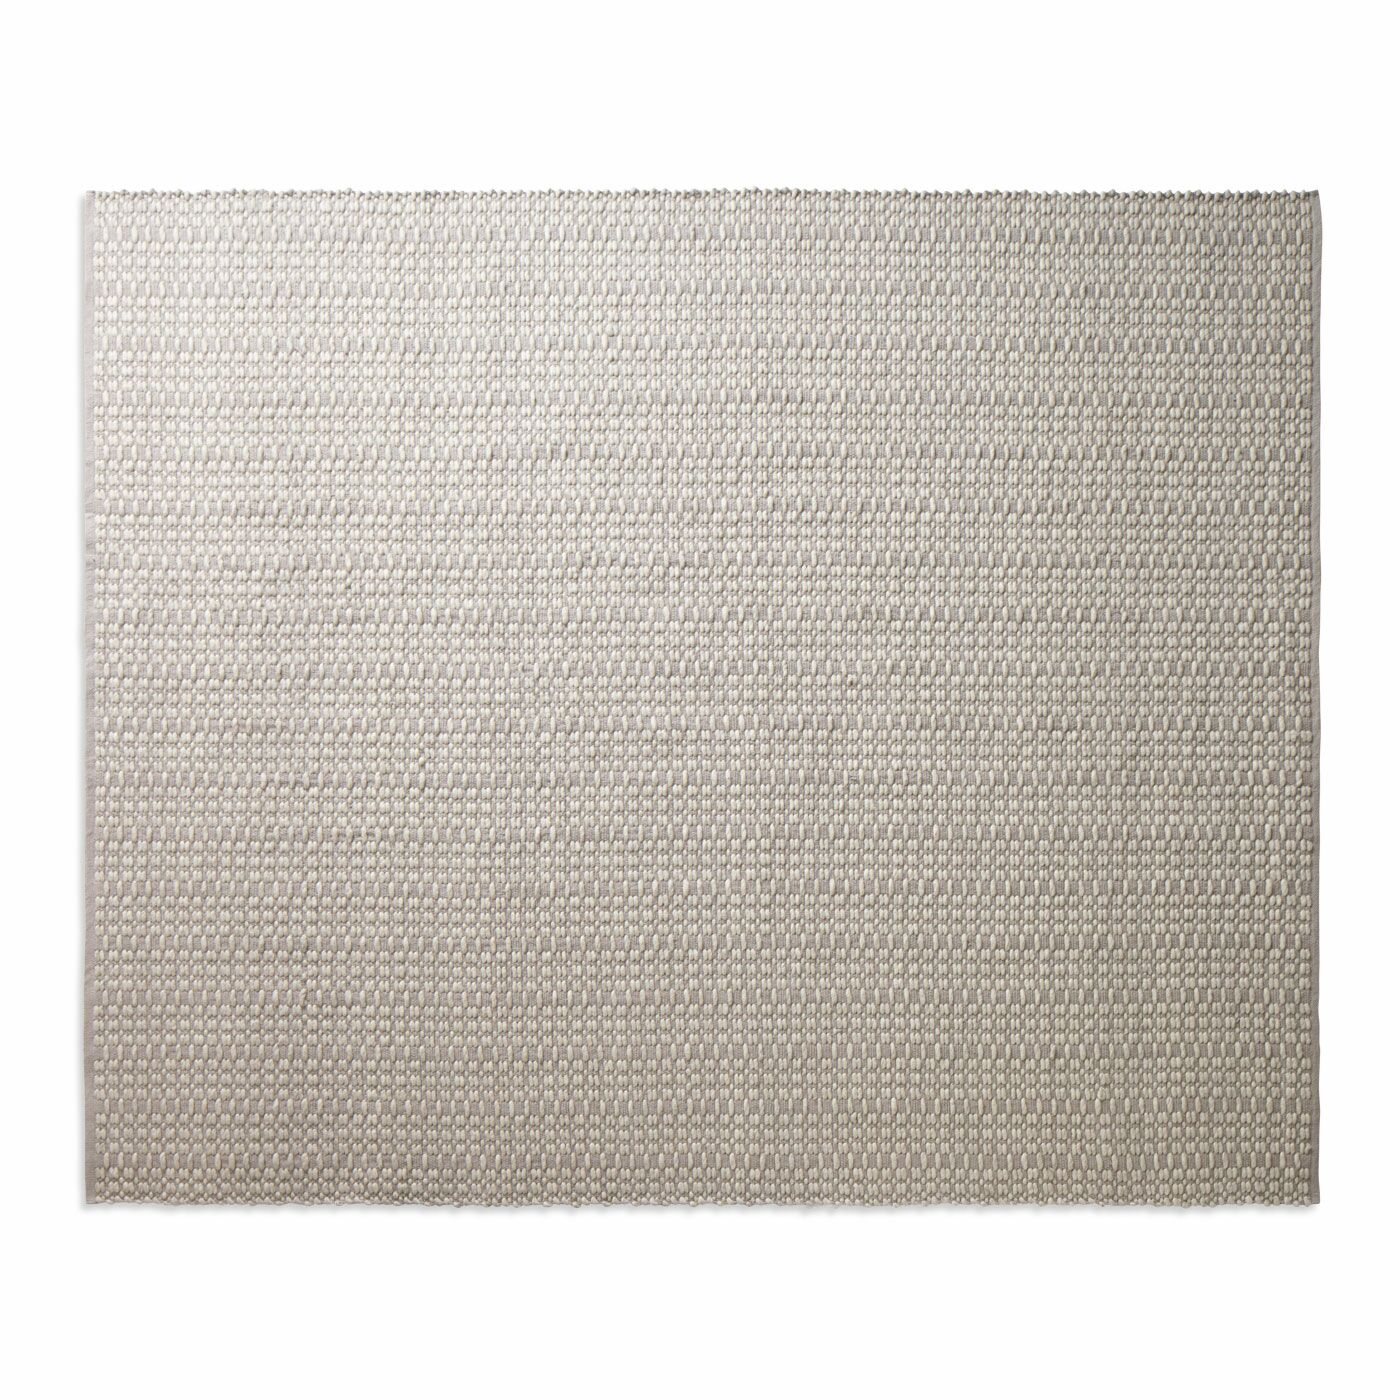 Weft Light Gray / Heathered Oatmeal Area Rug Rug Size: 8' x 10'